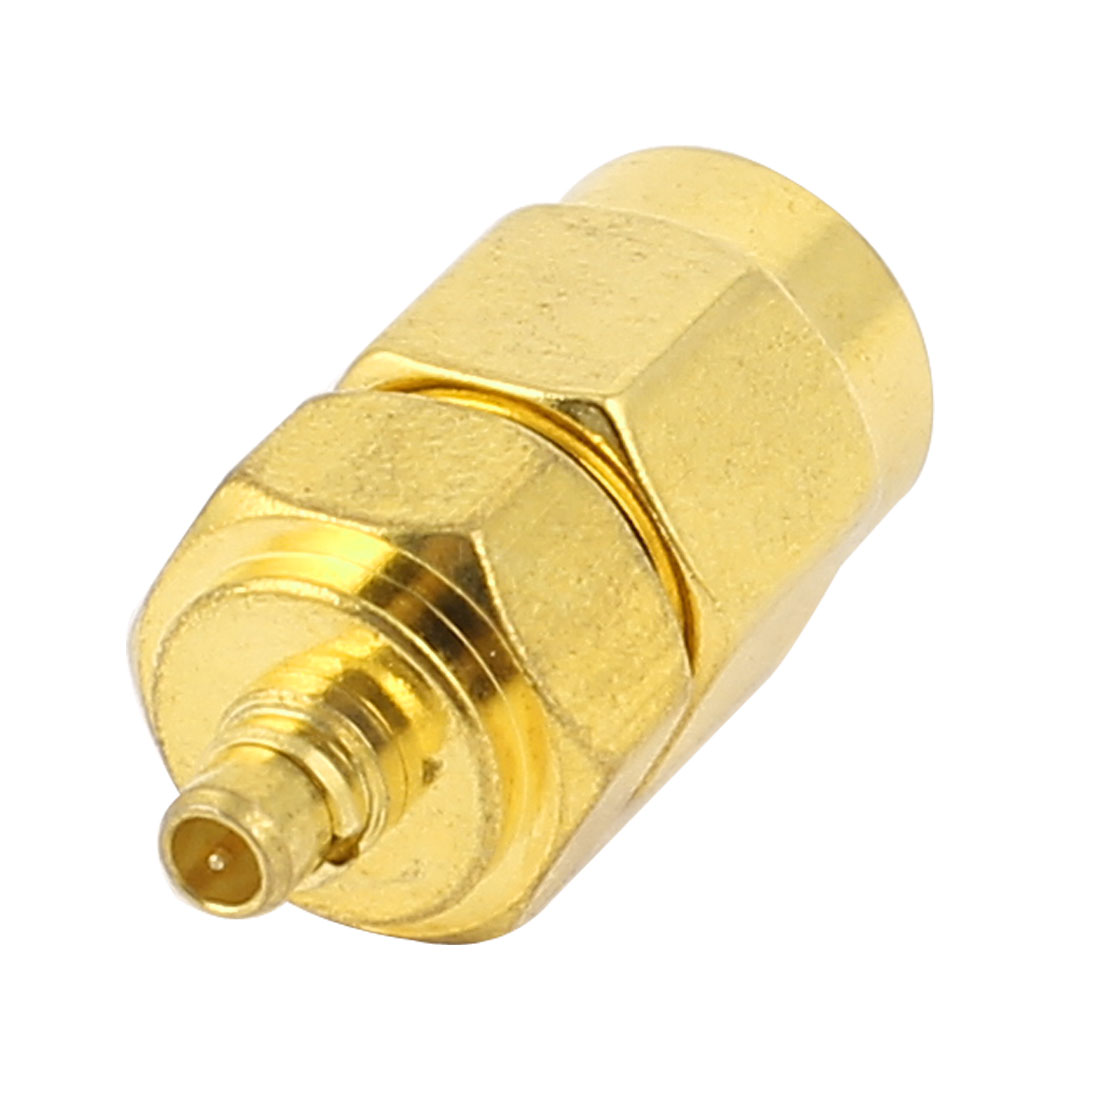 Gold Plated Straight SMA Male to MCX Male Coaxial RF Adapter Connector